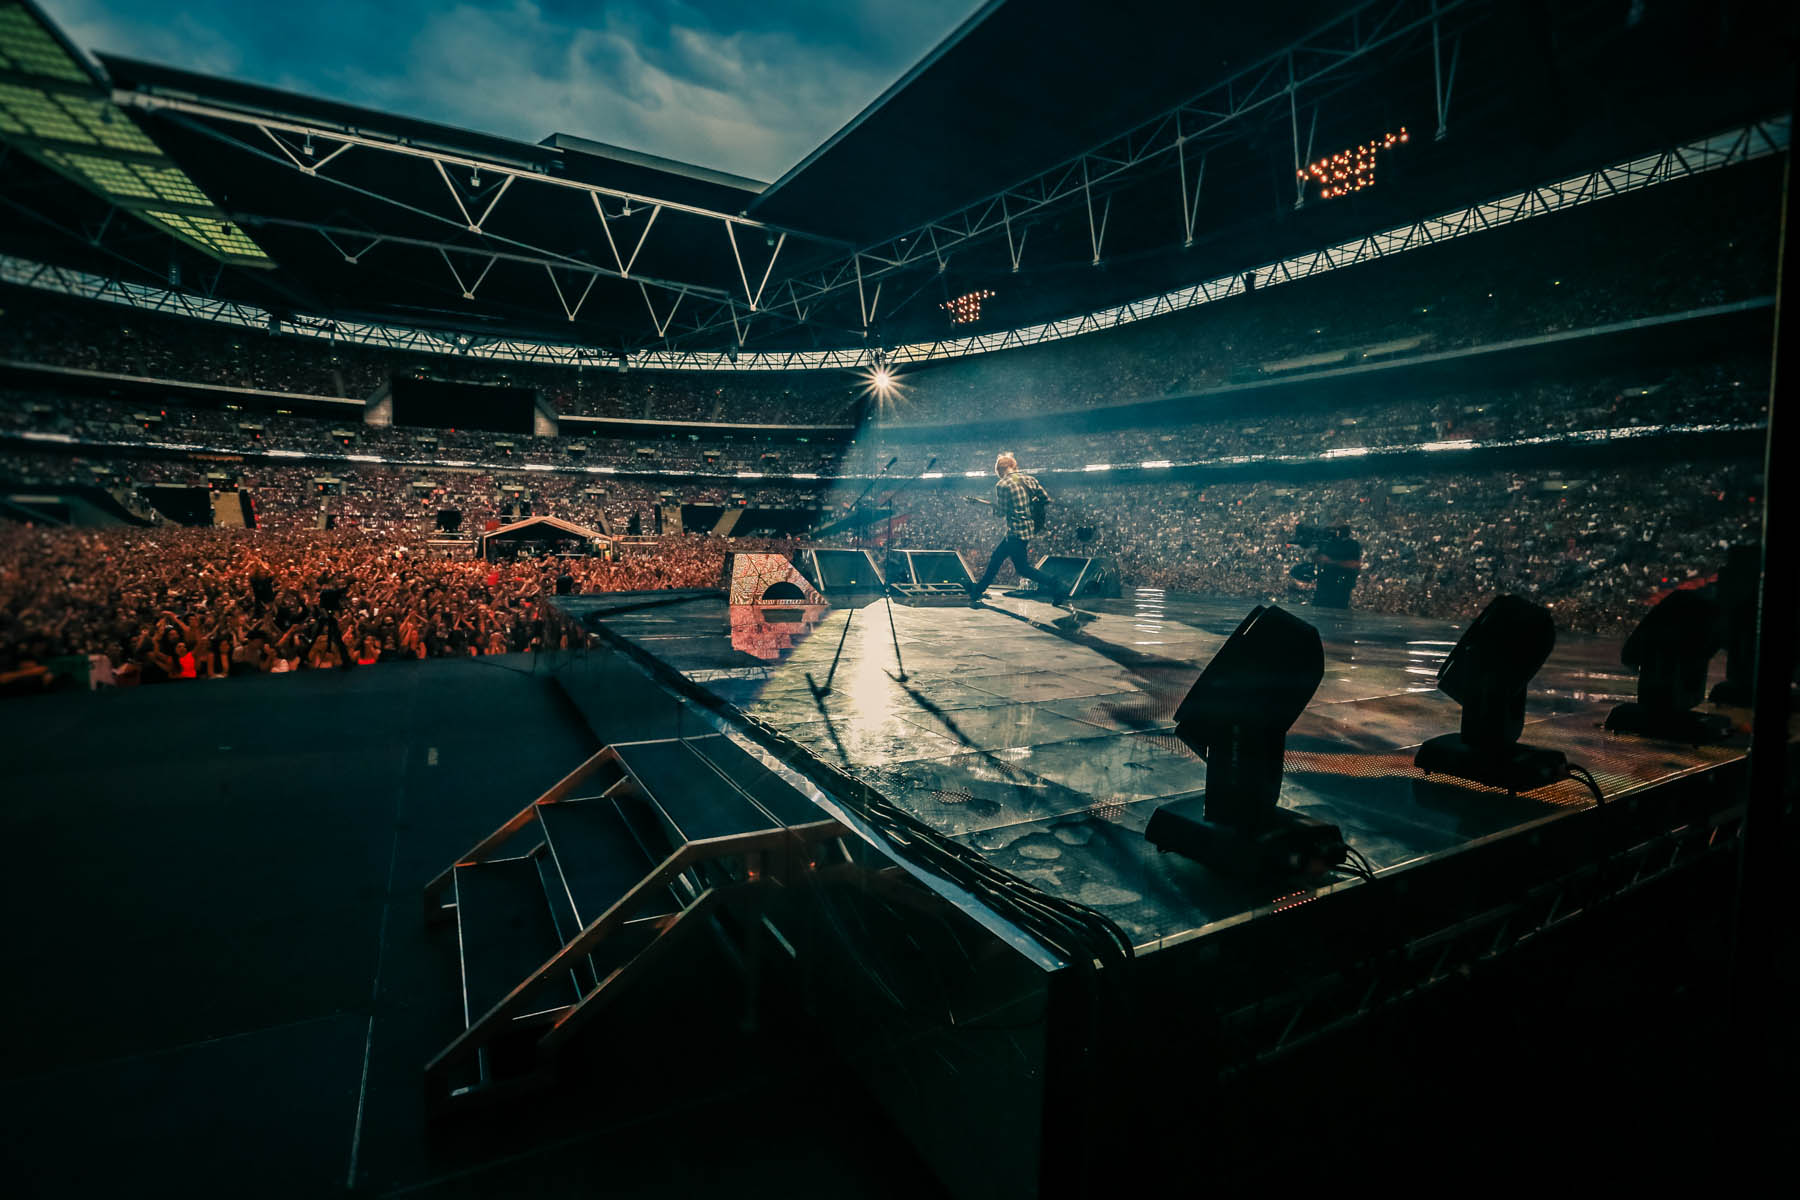 Ed Sheeran at Wembley Stadium by Christie Goodwin